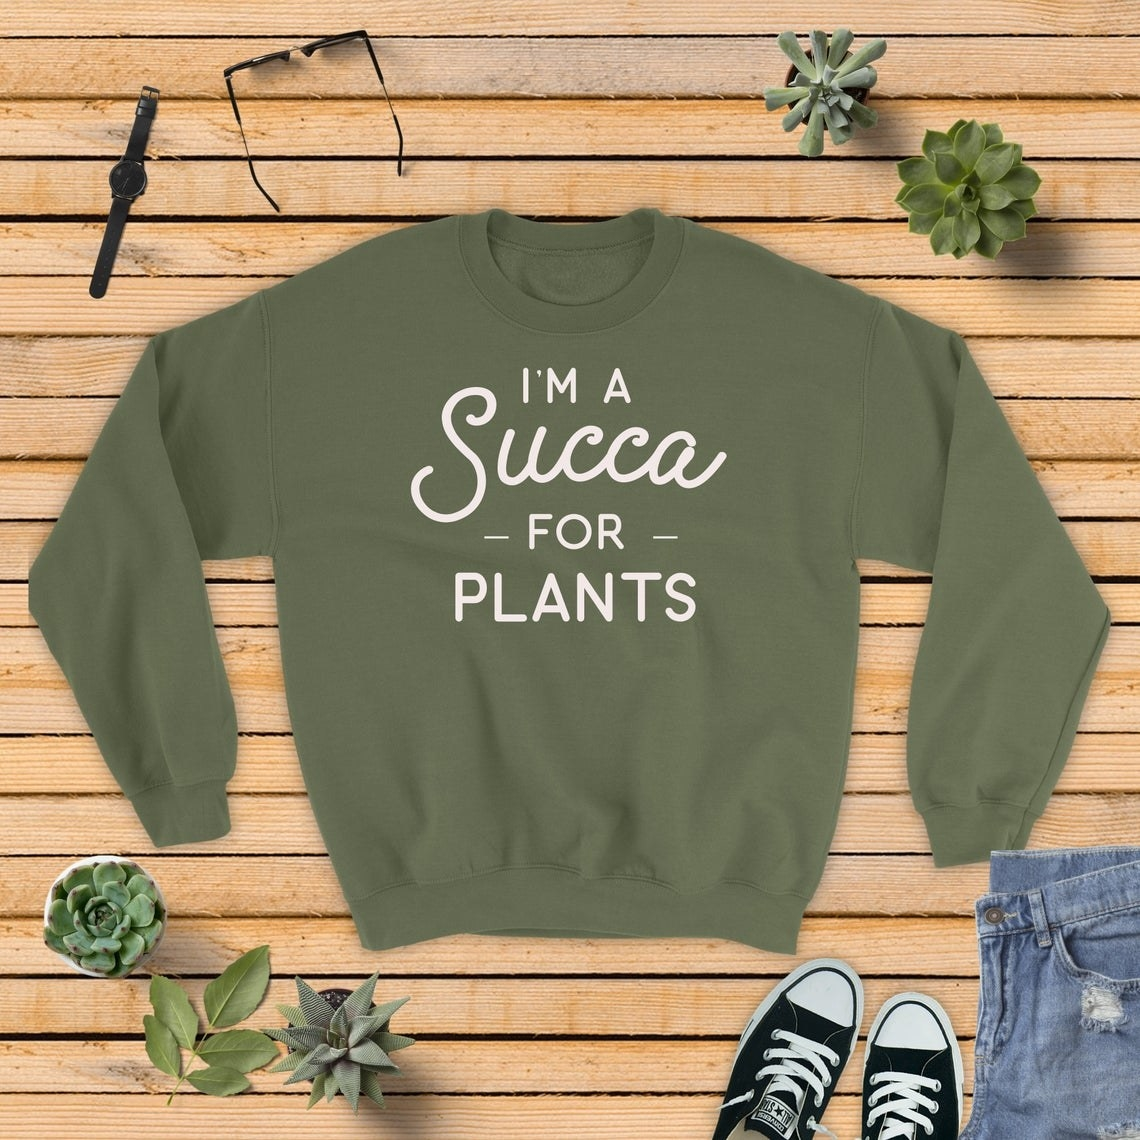 crewneck sweatshirt that says succa for plants